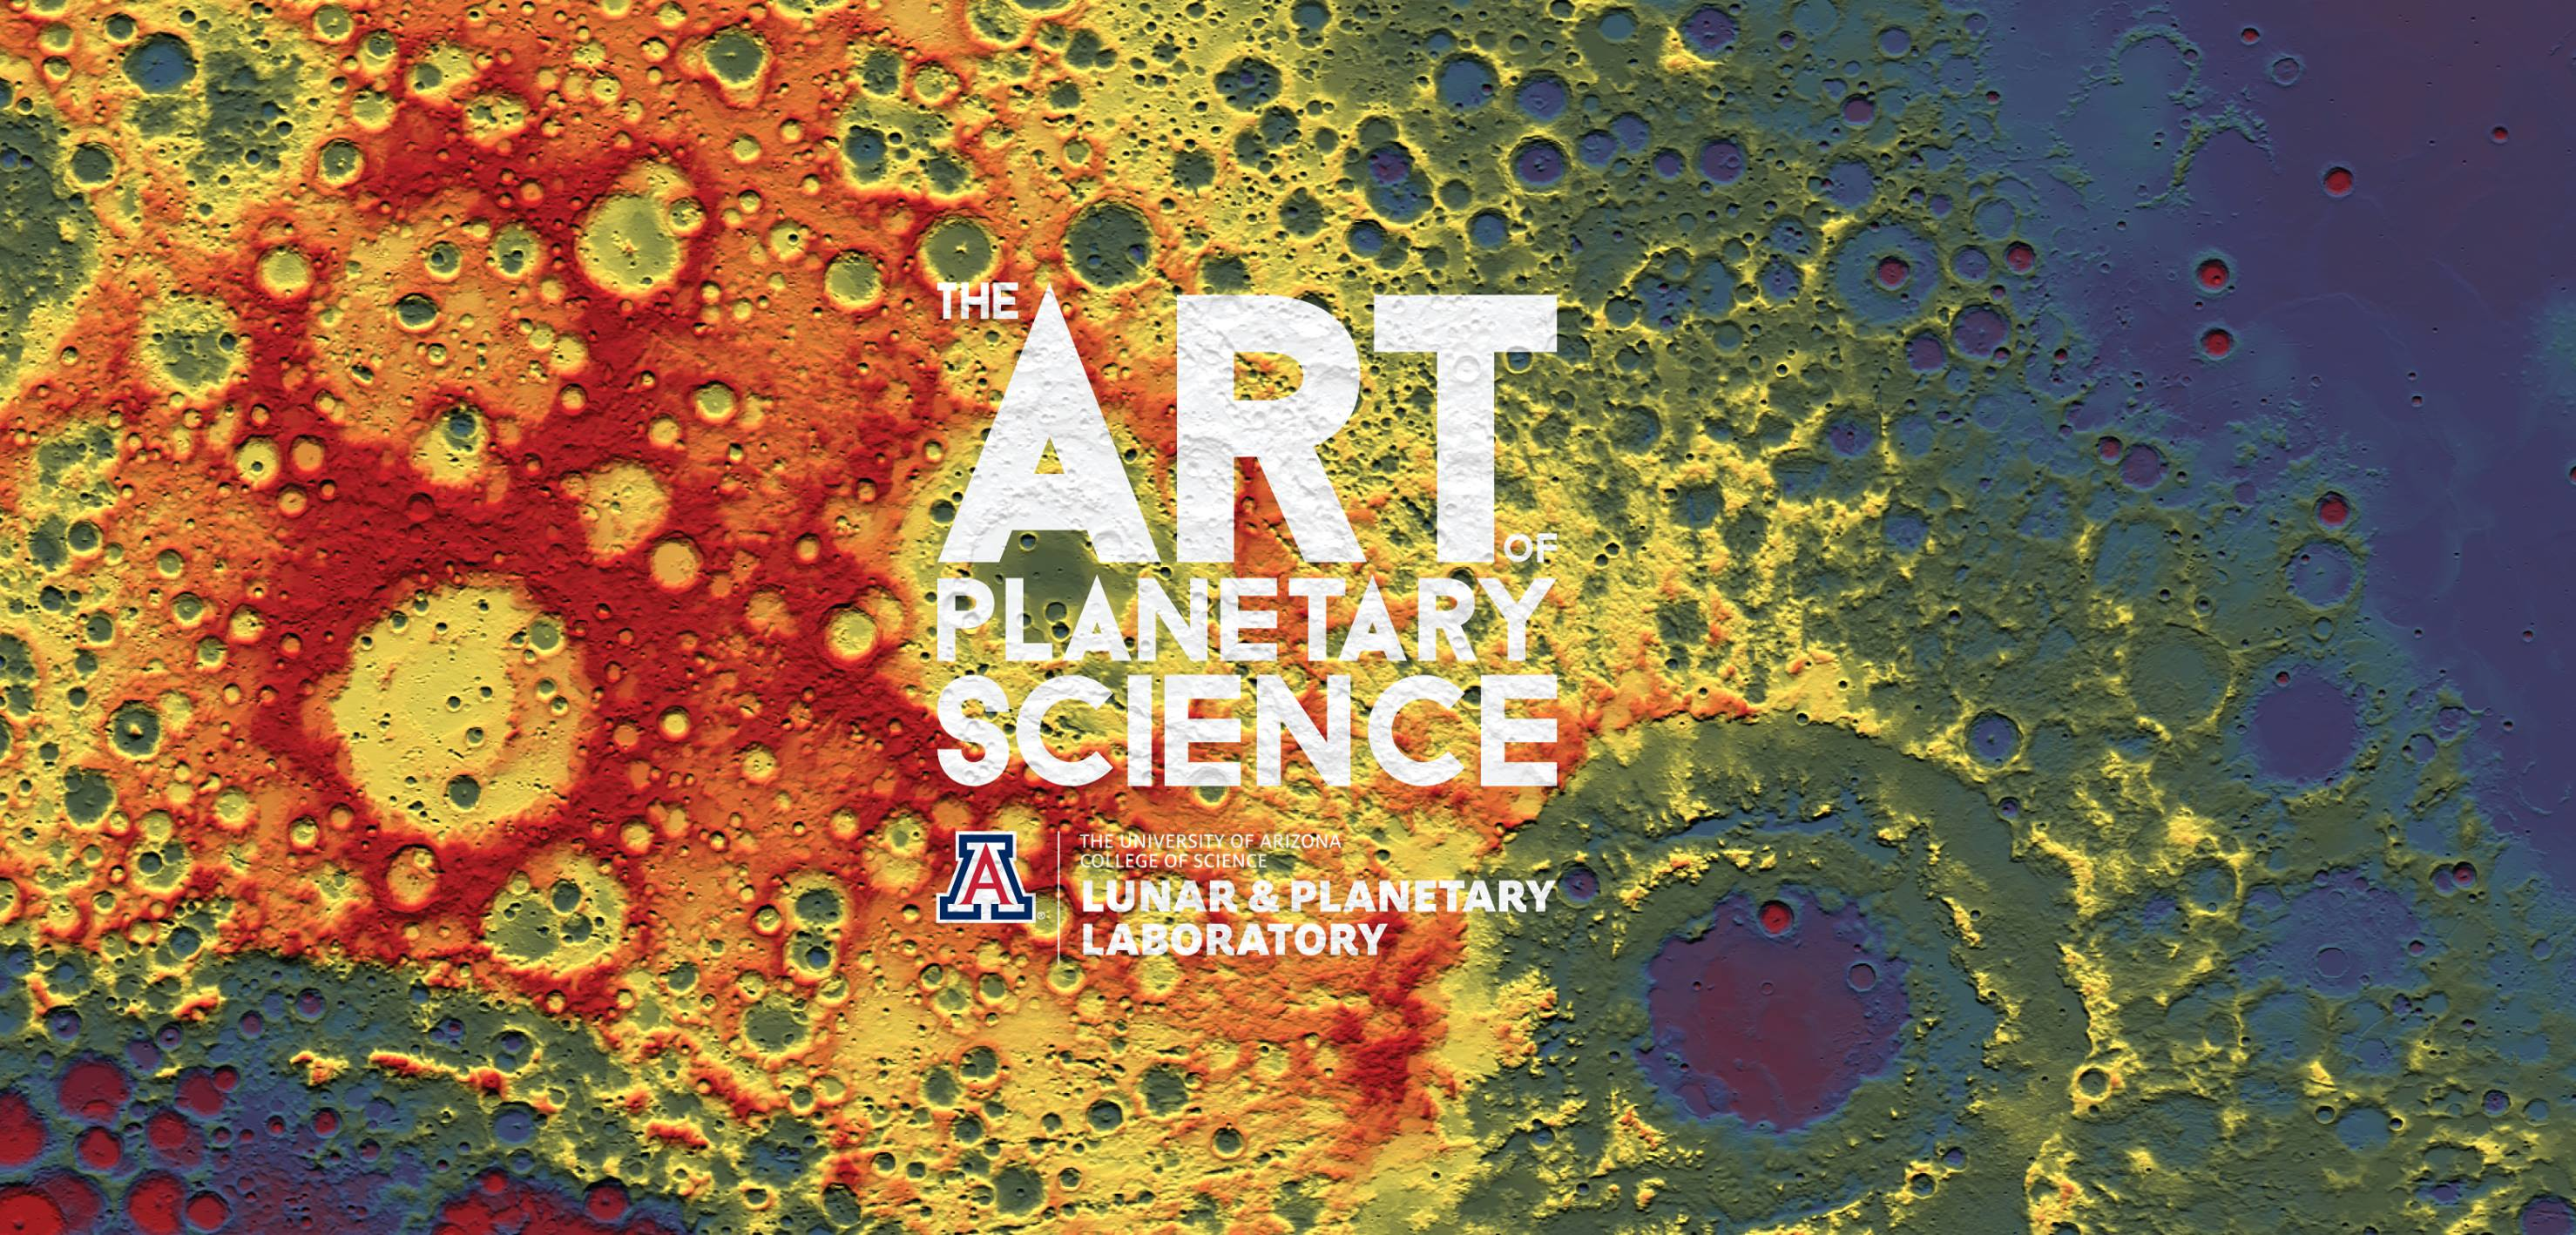 The Art of Planetary Science 2019 Exhibit